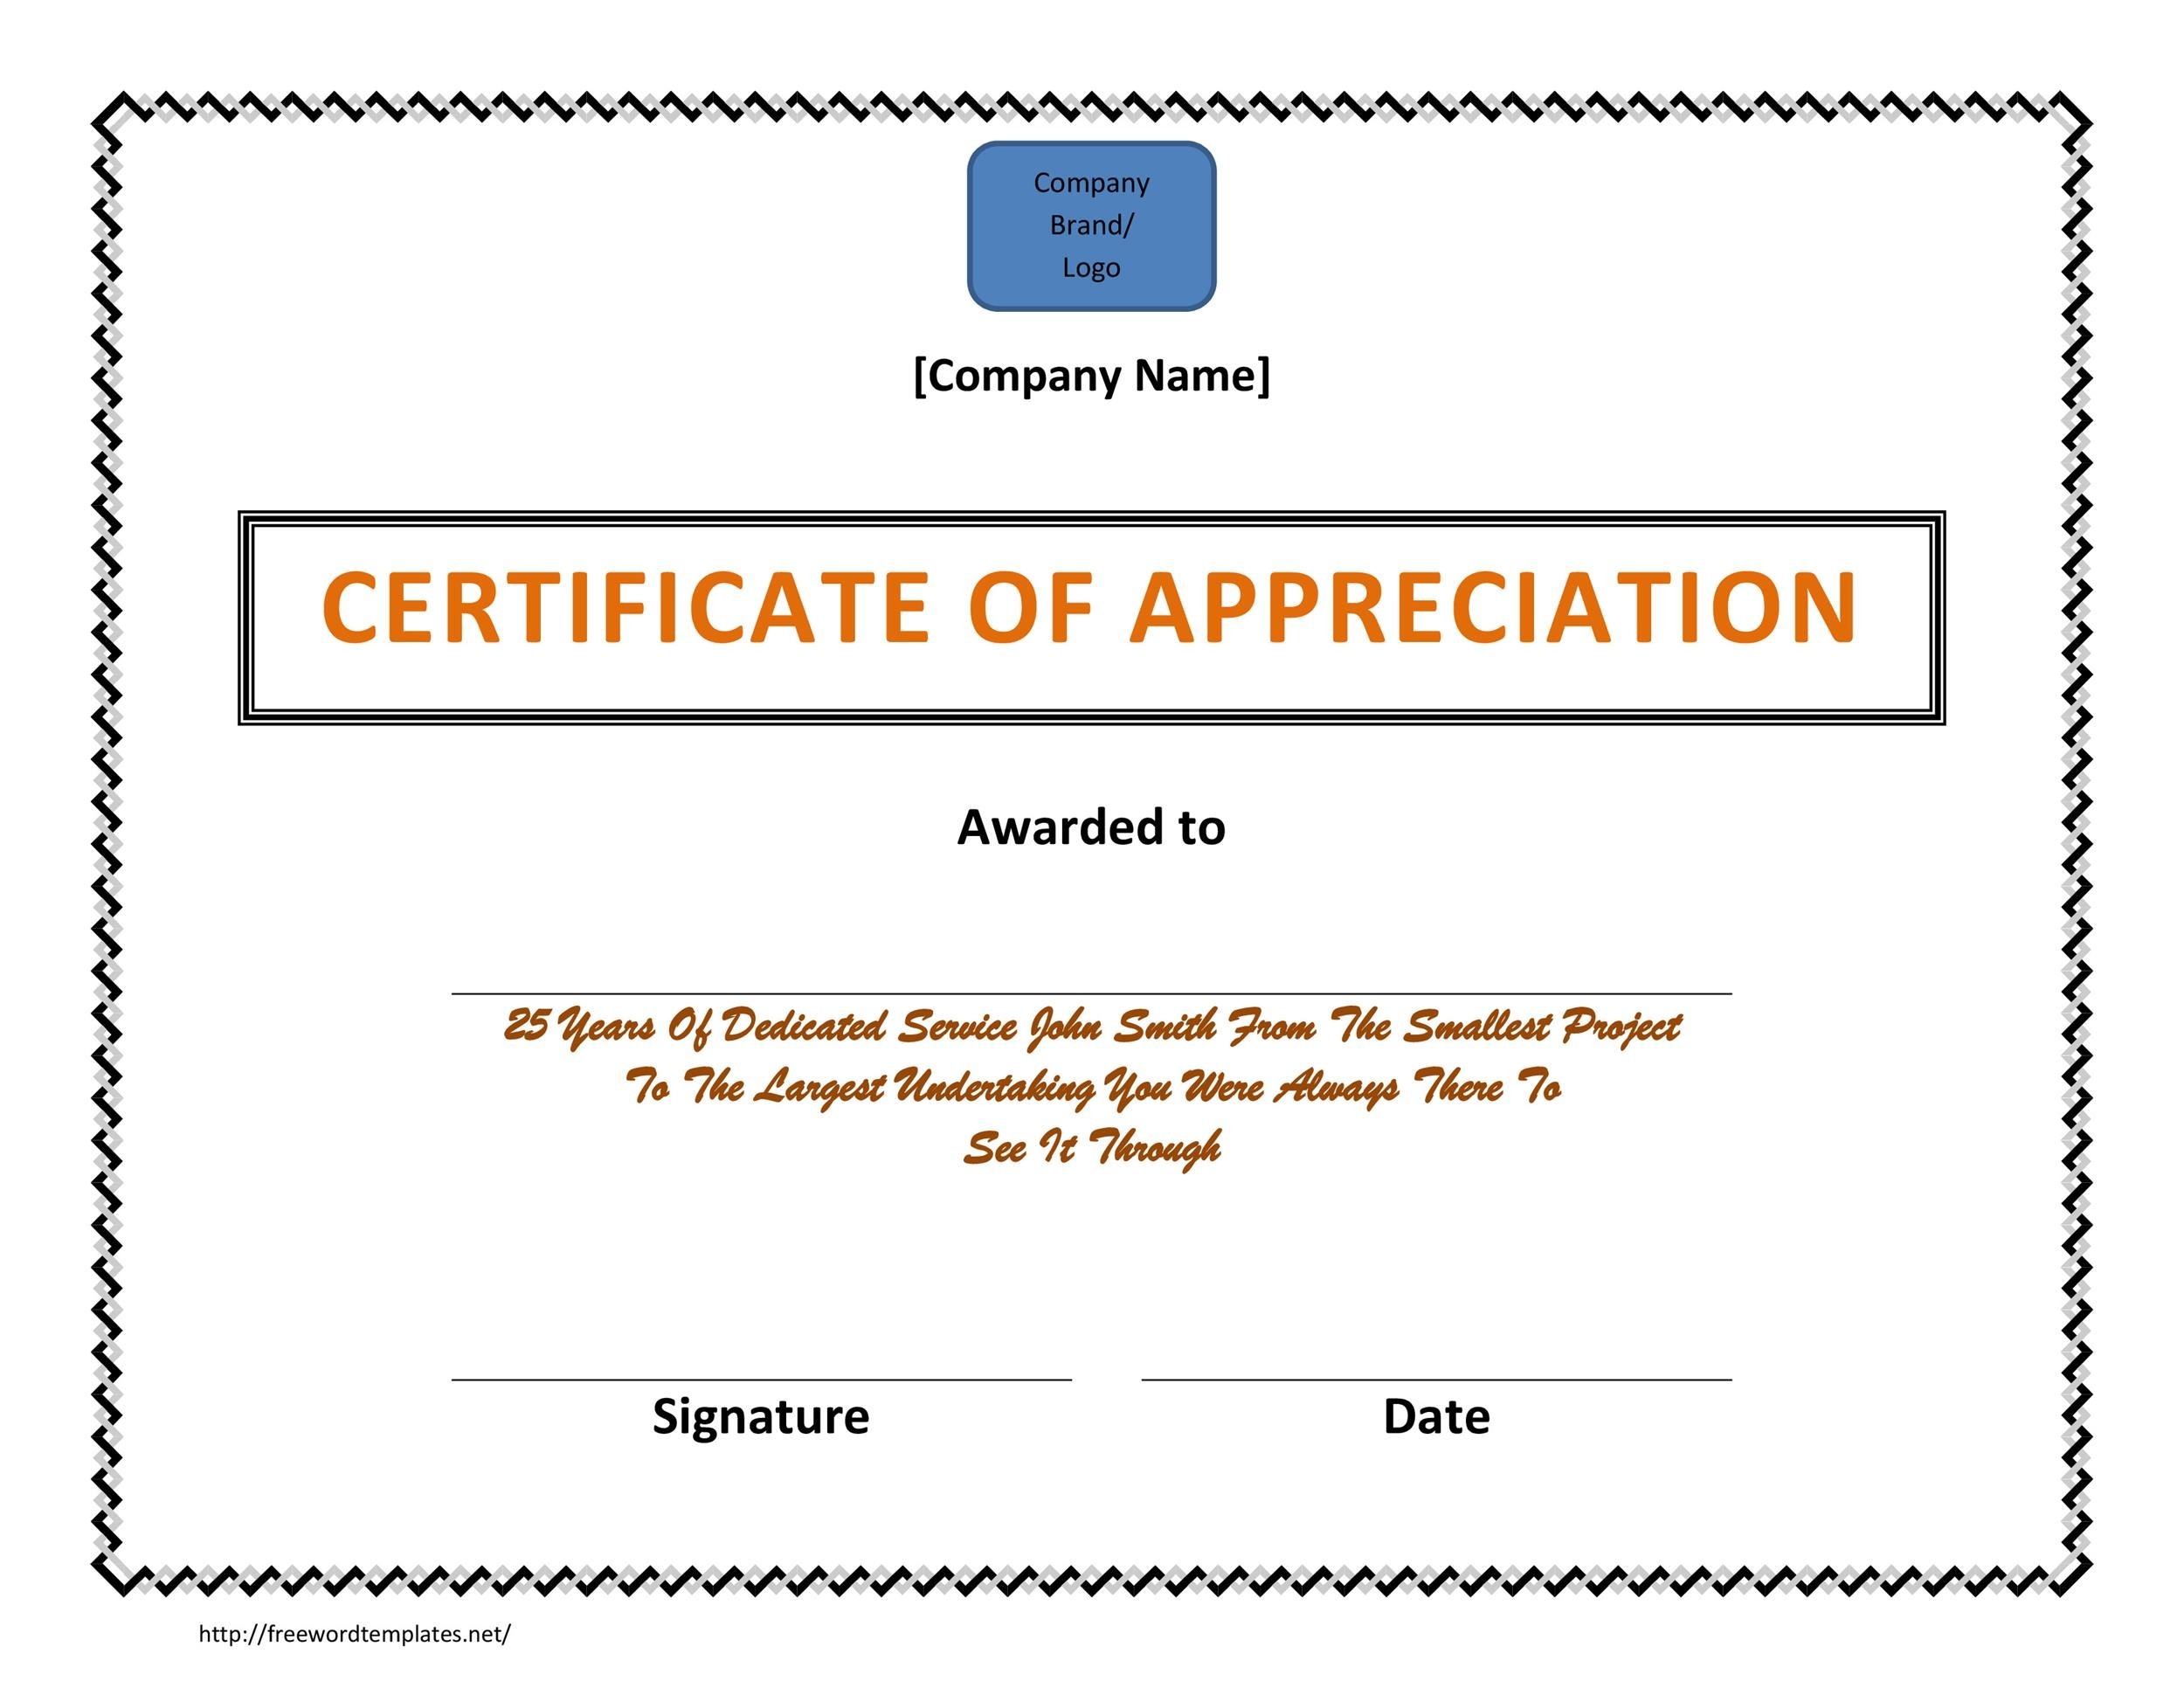 30 free certificate of appreciation templates and letters printable certificate of appreciation 05 spiritdancerdesigns